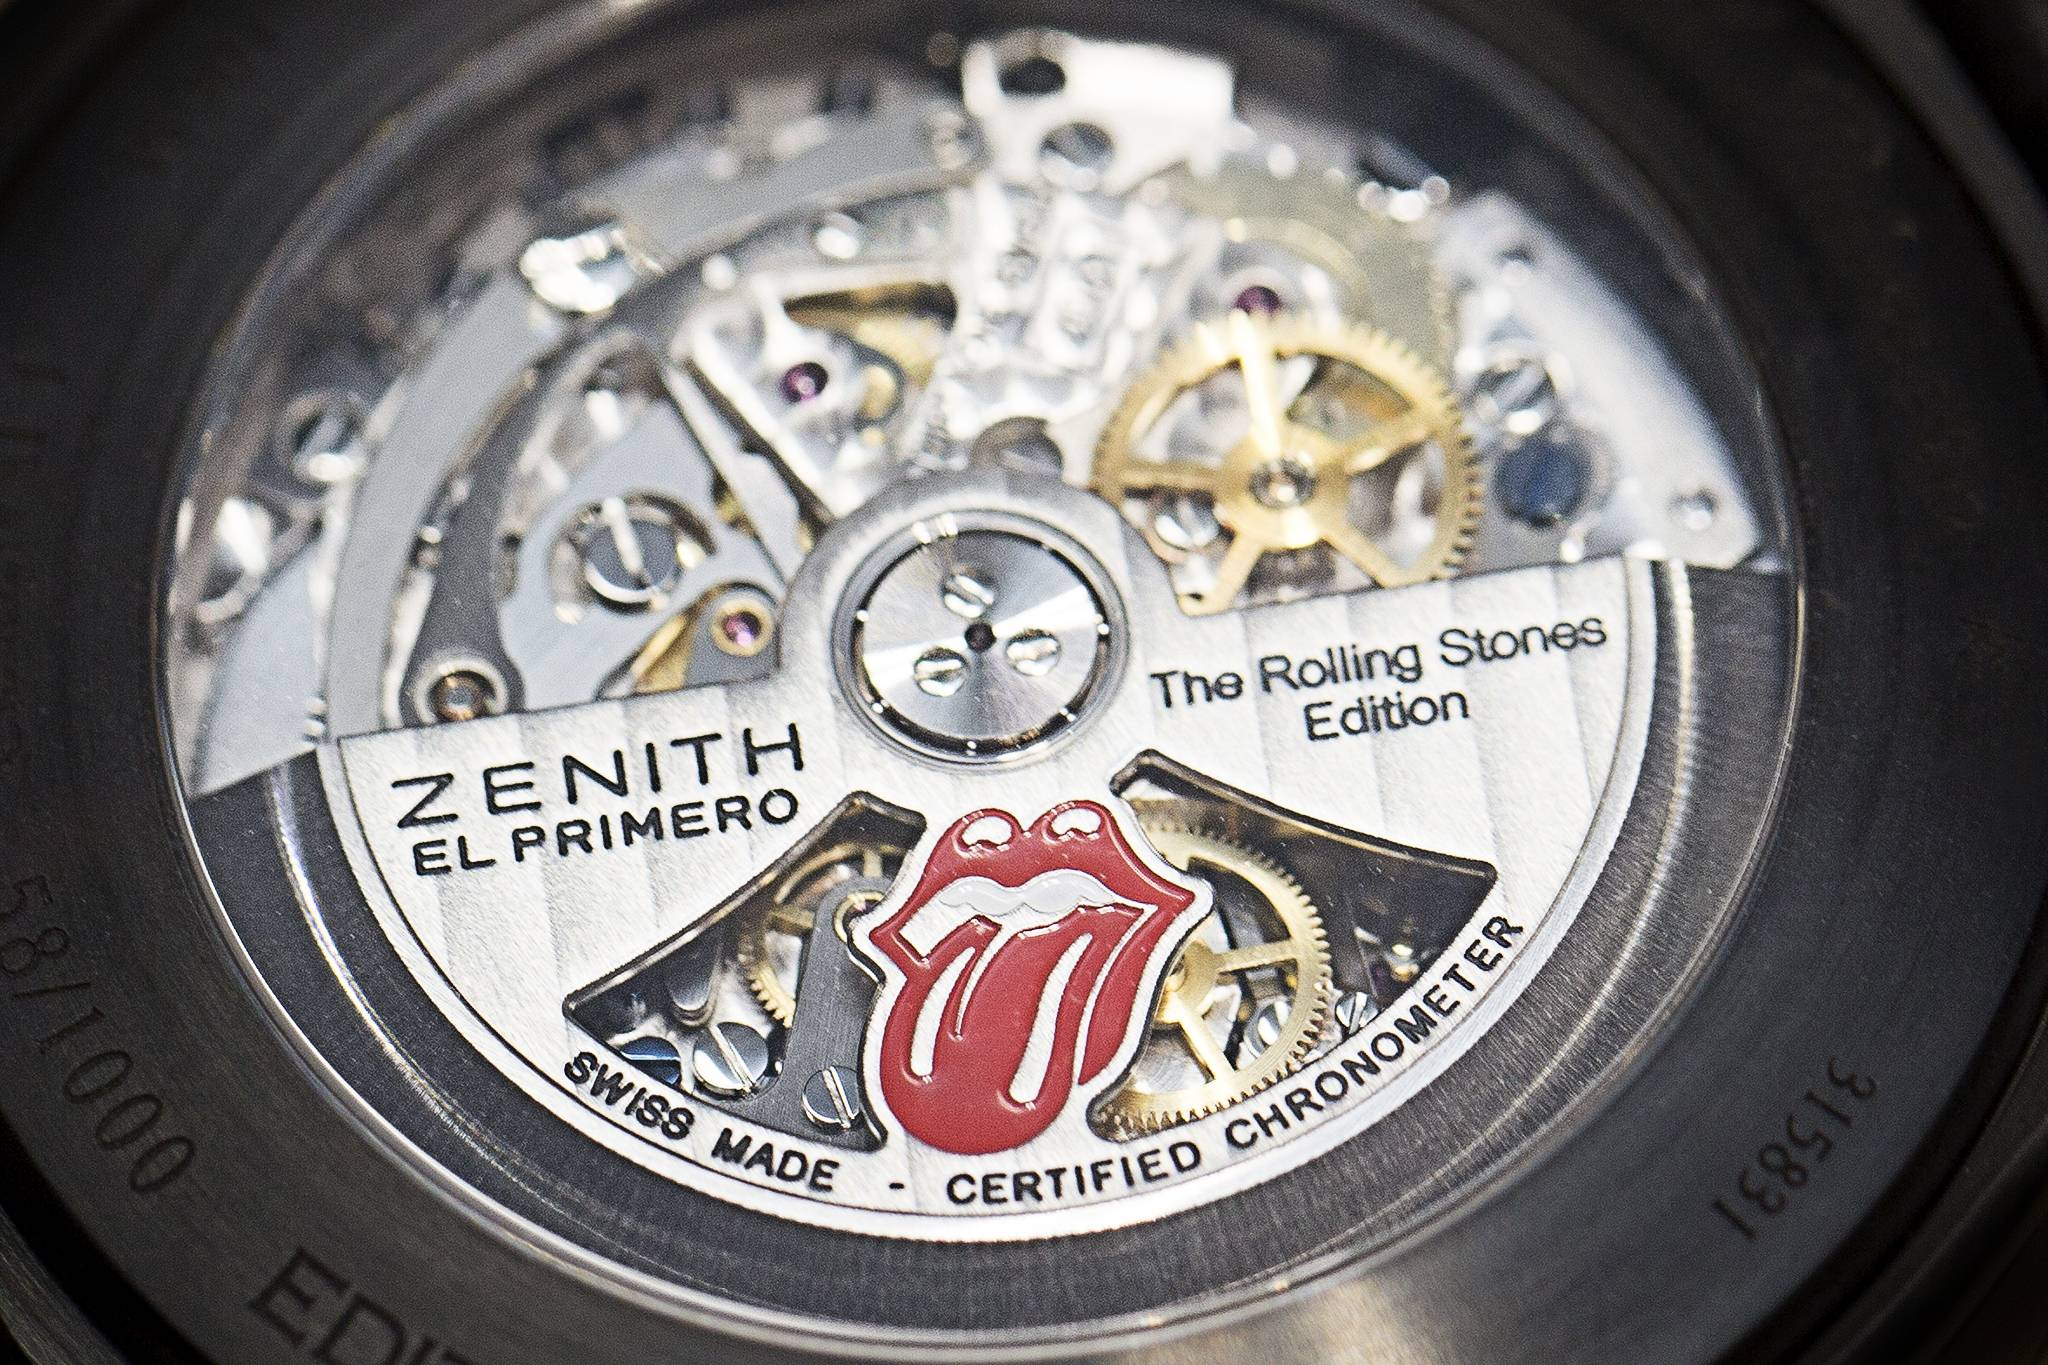 Zenith El Primero Chronomaster 1969 Tribute To The Rolling Stones Watch 2015 Movement